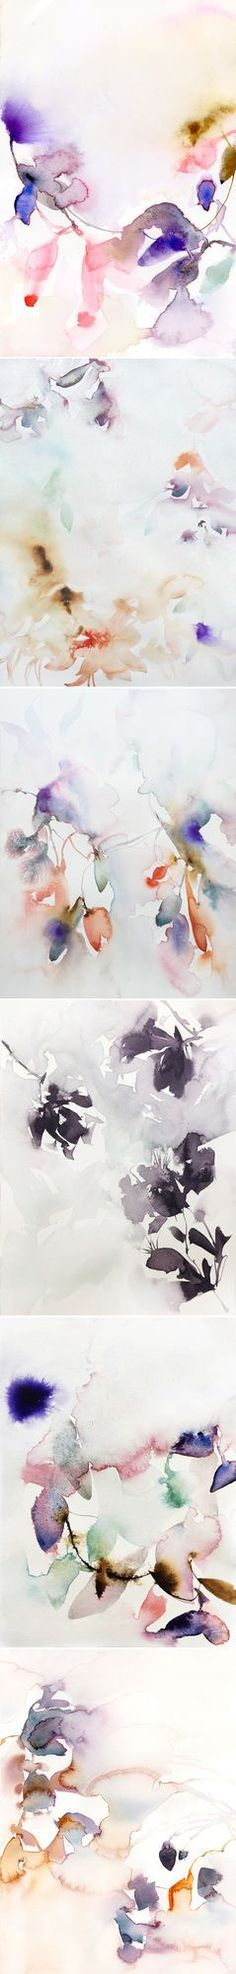 Oh. I am desperate for spring to arrive, but considering it's only February 9th I think I'm in for a bit of a wait… maybe I'll just stare at these gorgeous, washy, abstract floral watercolors for the #watercolorarts